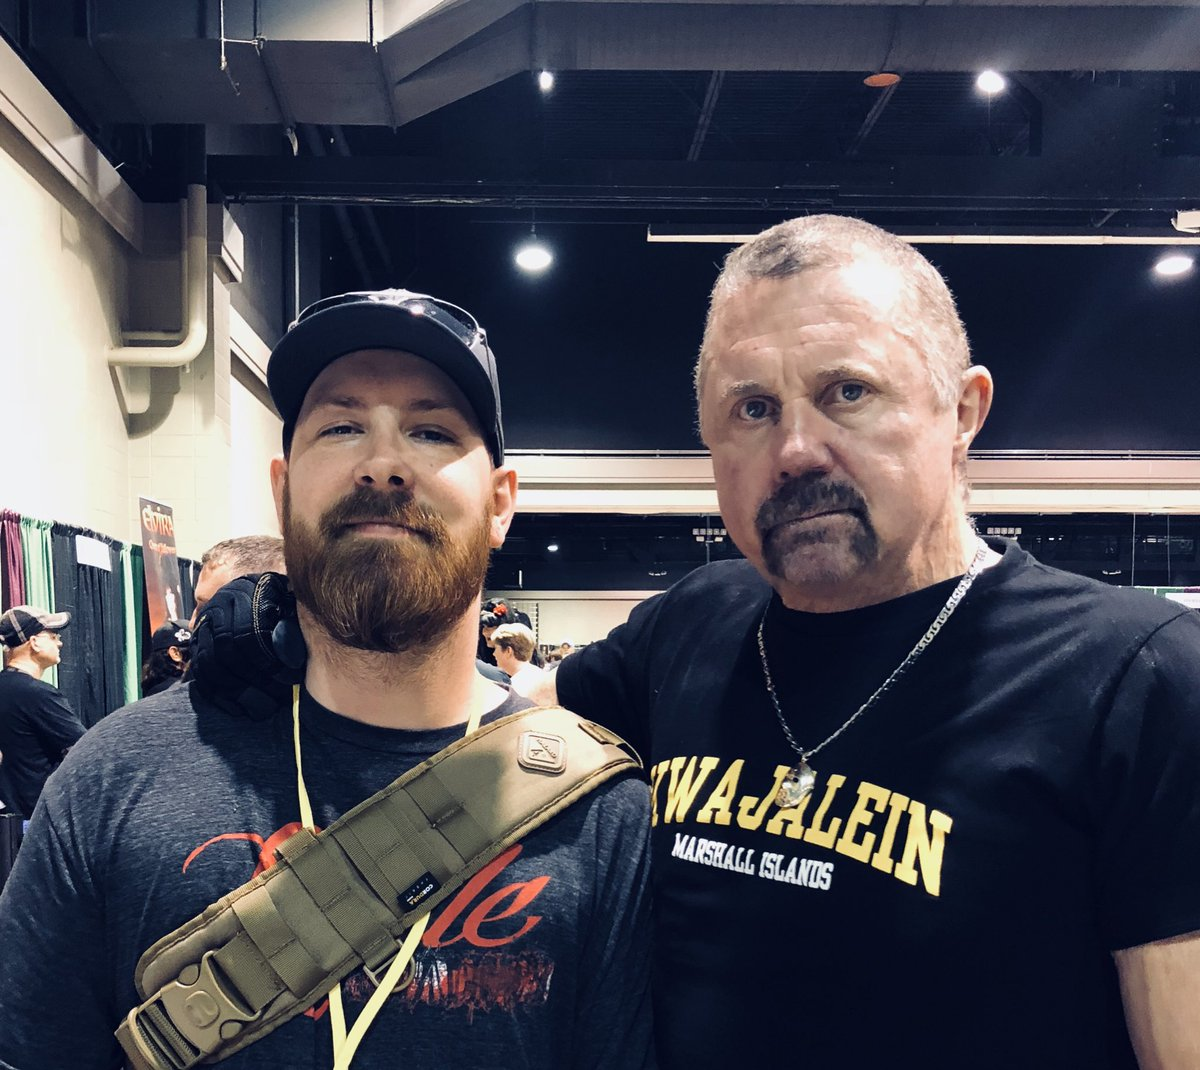 At @TheScarefest with @kanehodder1. If you're in Lexington, make sure to come by!